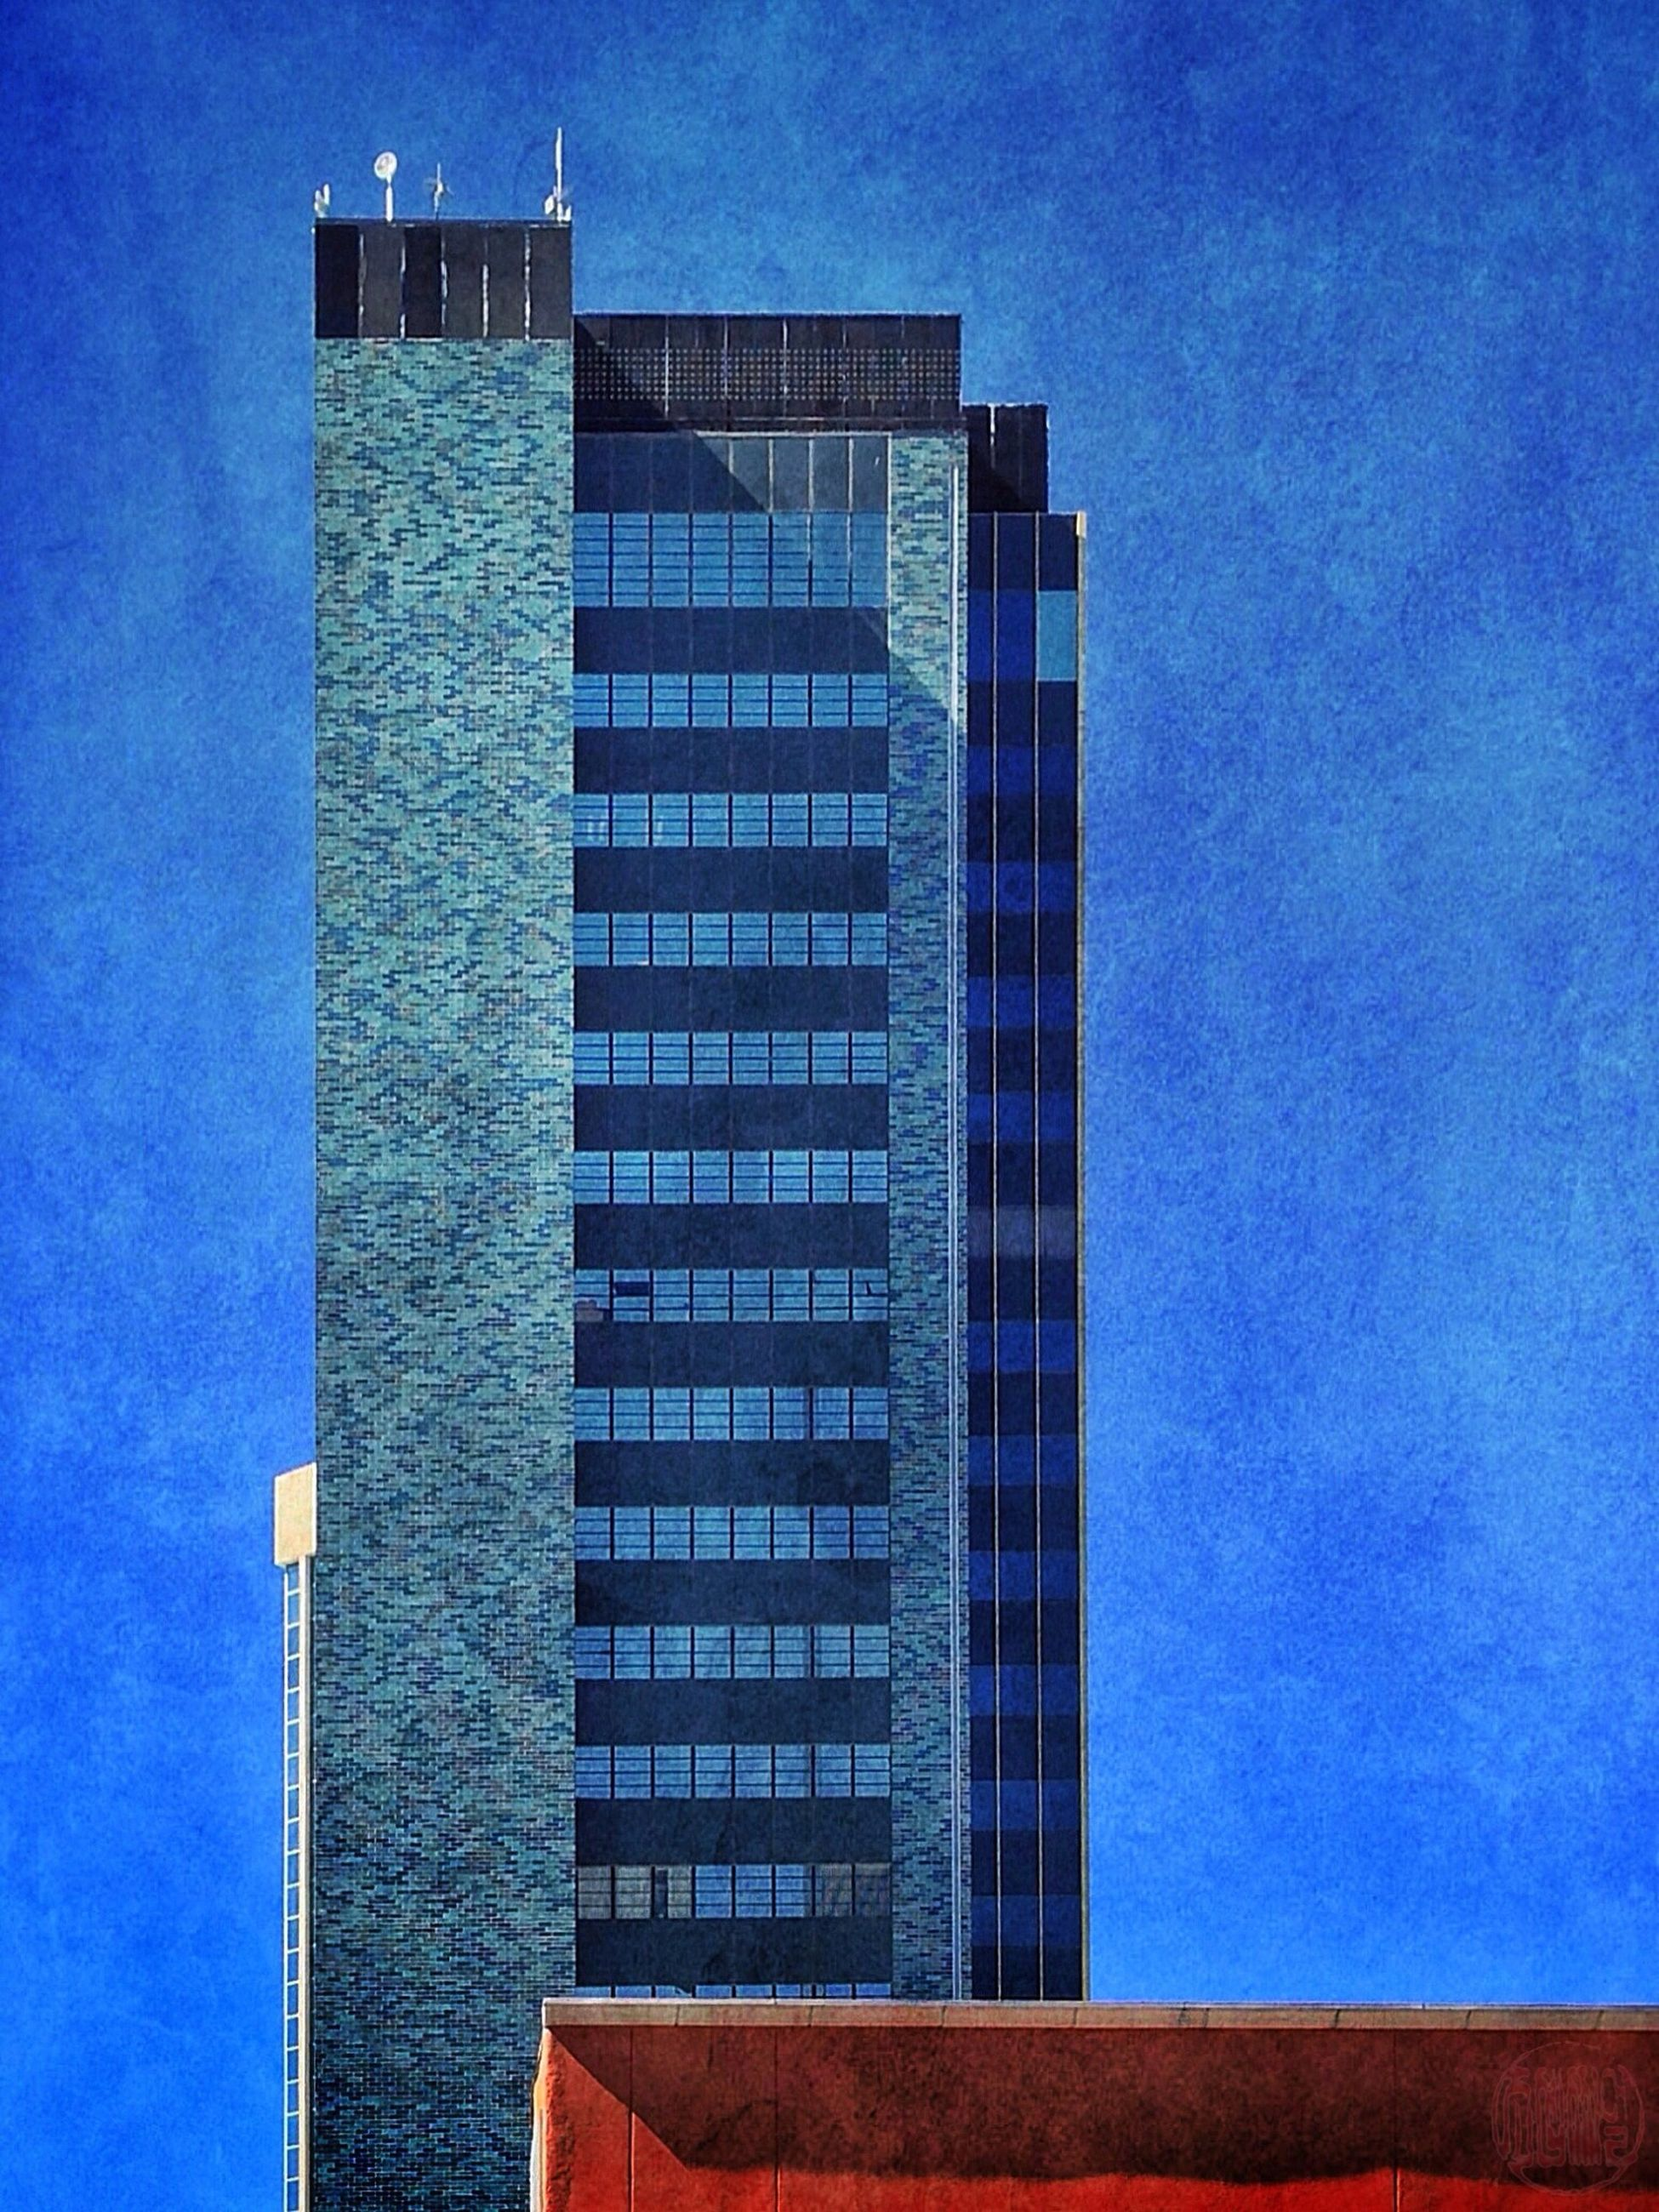 architecture, building exterior, built structure, low angle view, blue, building, clear sky, sky, tall - high, tower, modern, city, window, sunlight, outdoors, office building, no people, day, exterior, tall